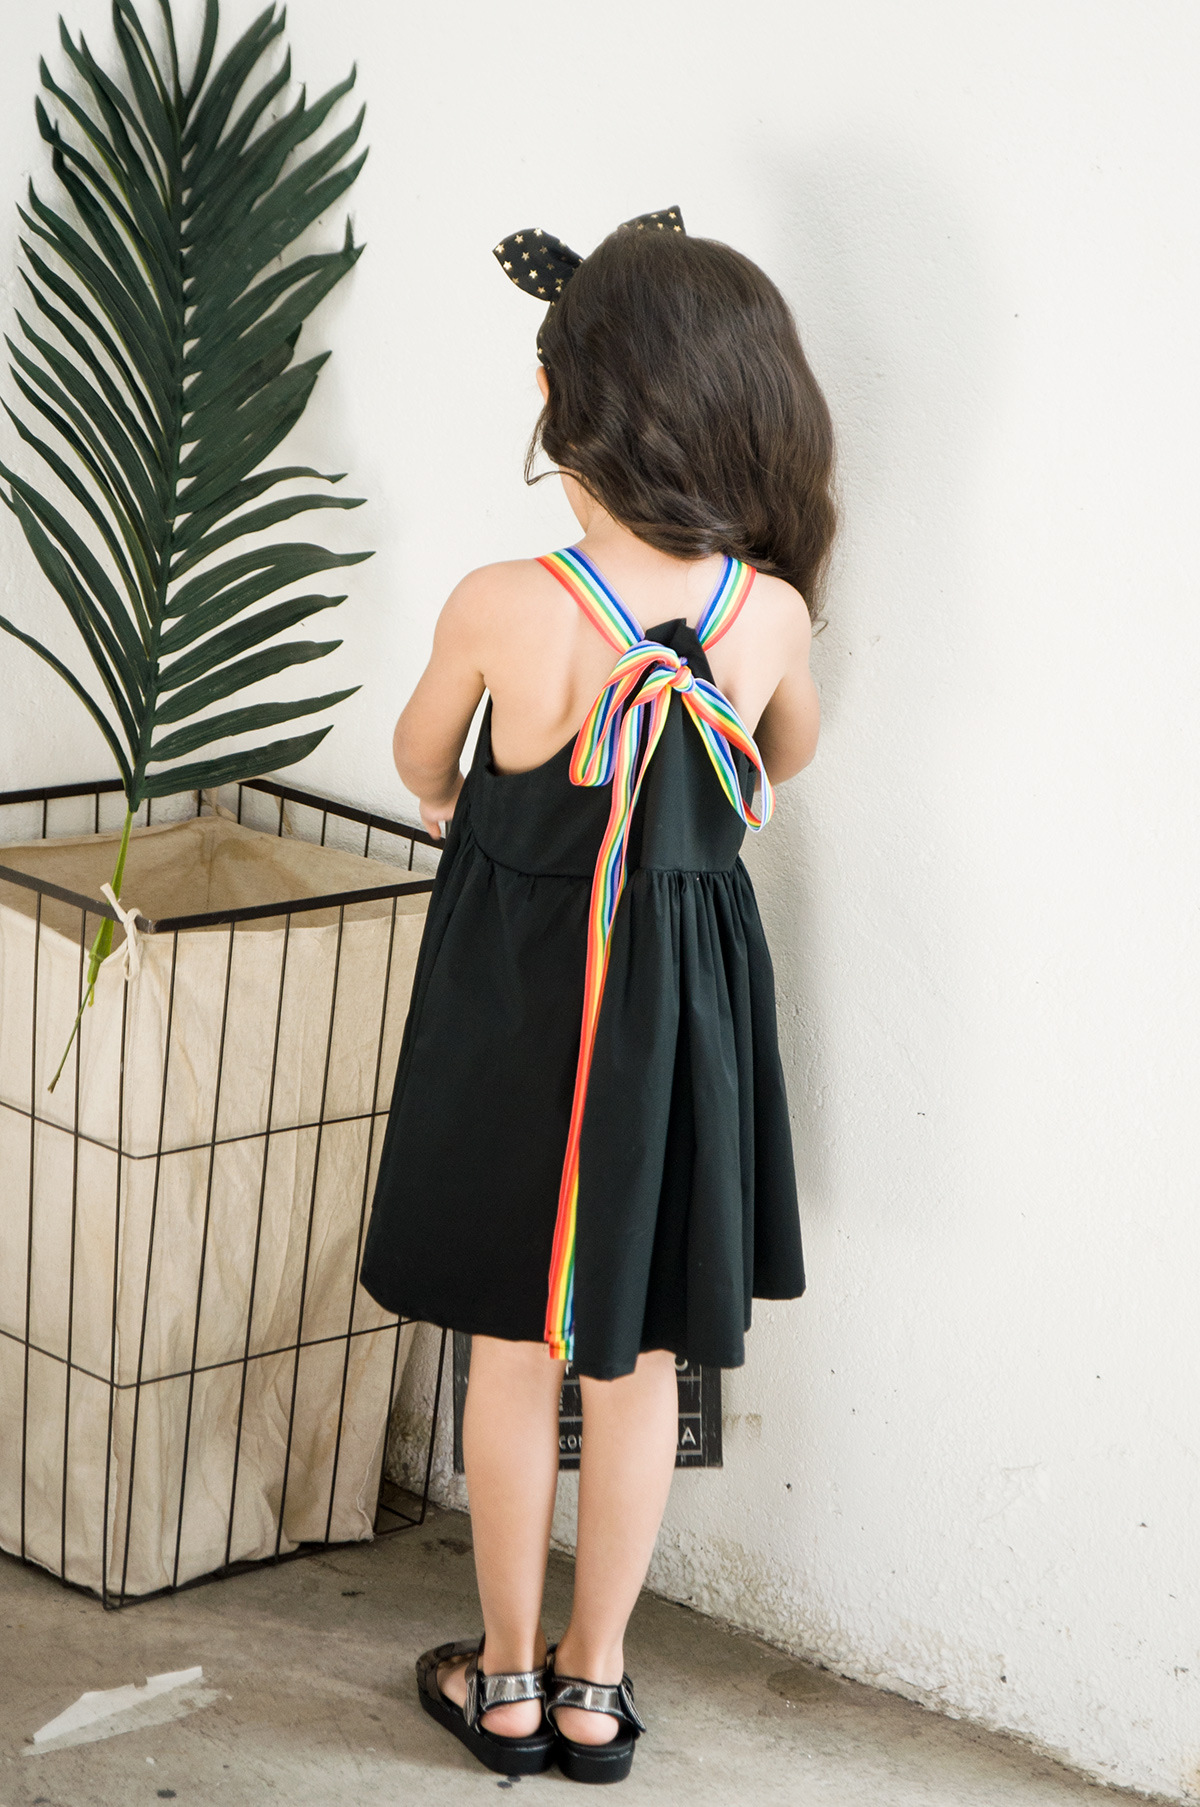 2020 New Arrival Children Clothing Girls Rainbow Strap Simply Black Cotton Dress Lovely Casual Kids Summer Dress